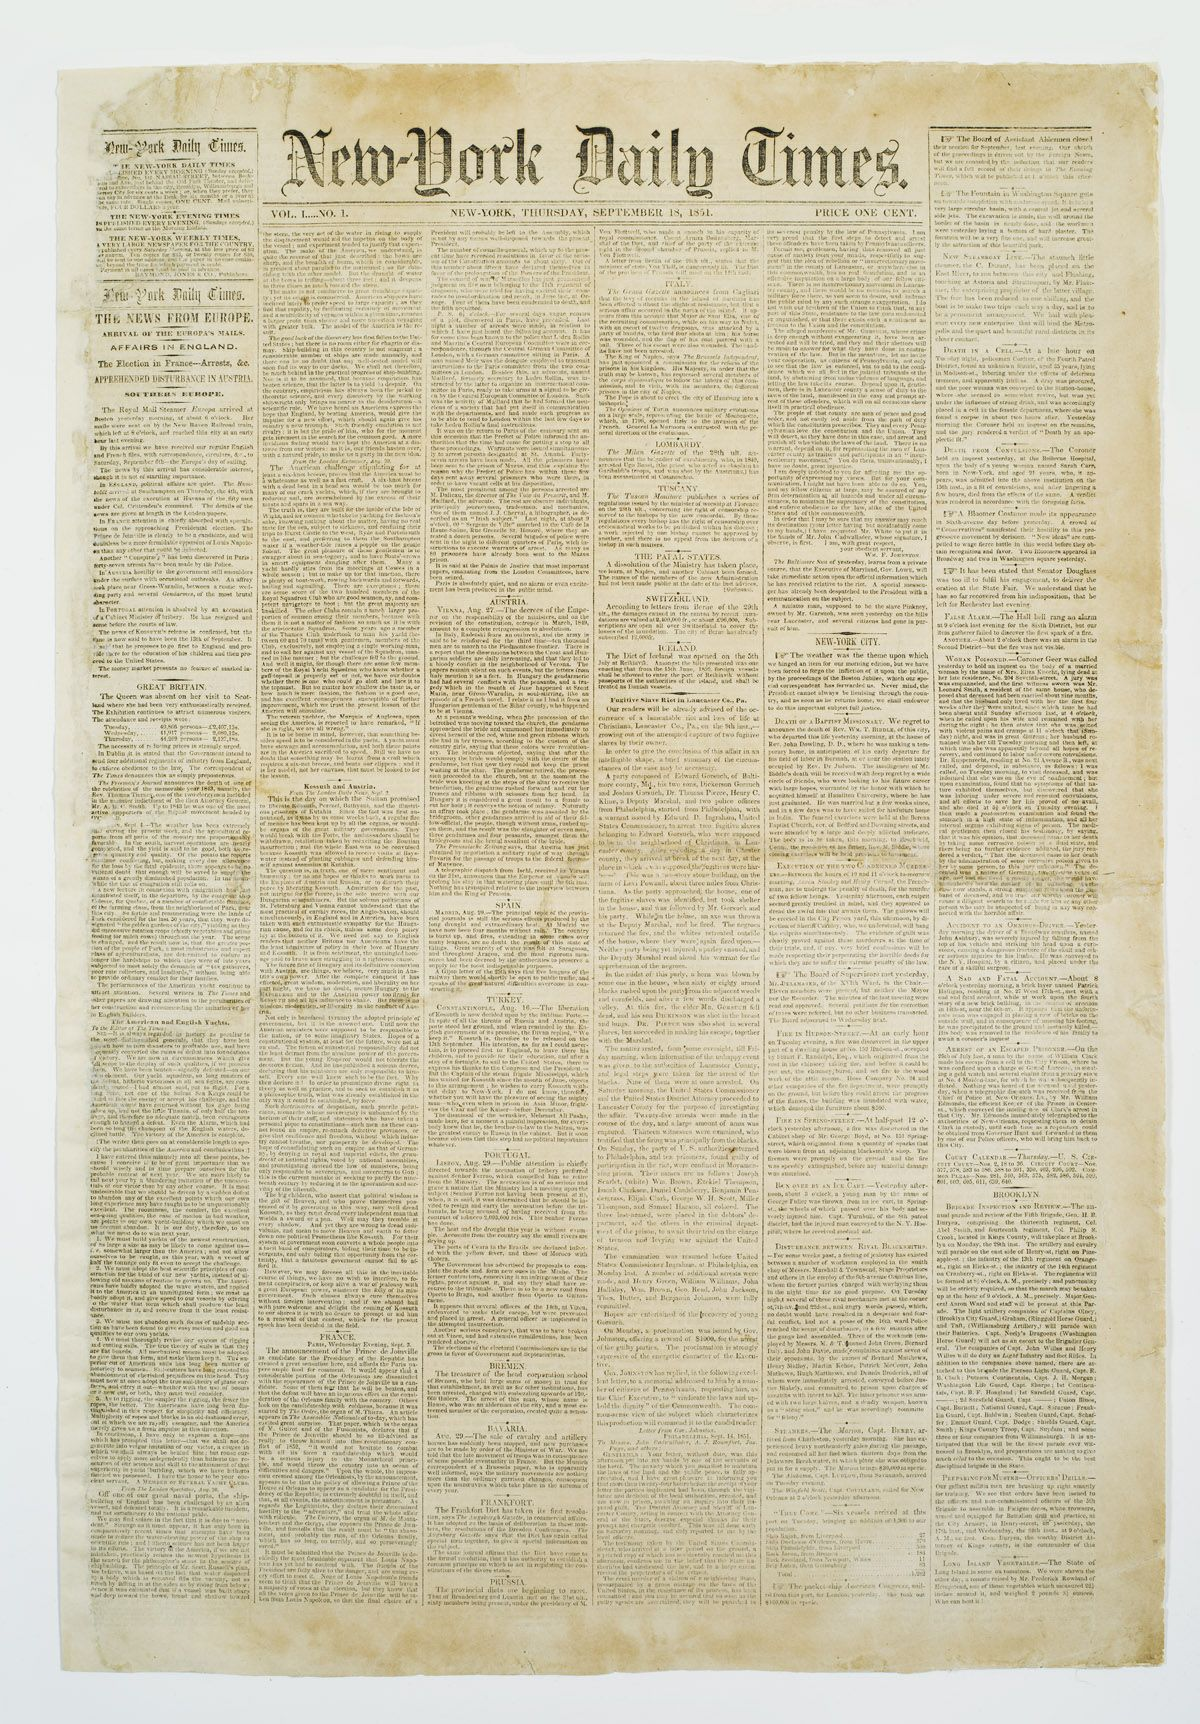 New-York Daily Times, Vol. 1, No.1, Thursday, September 18, 1851 ...